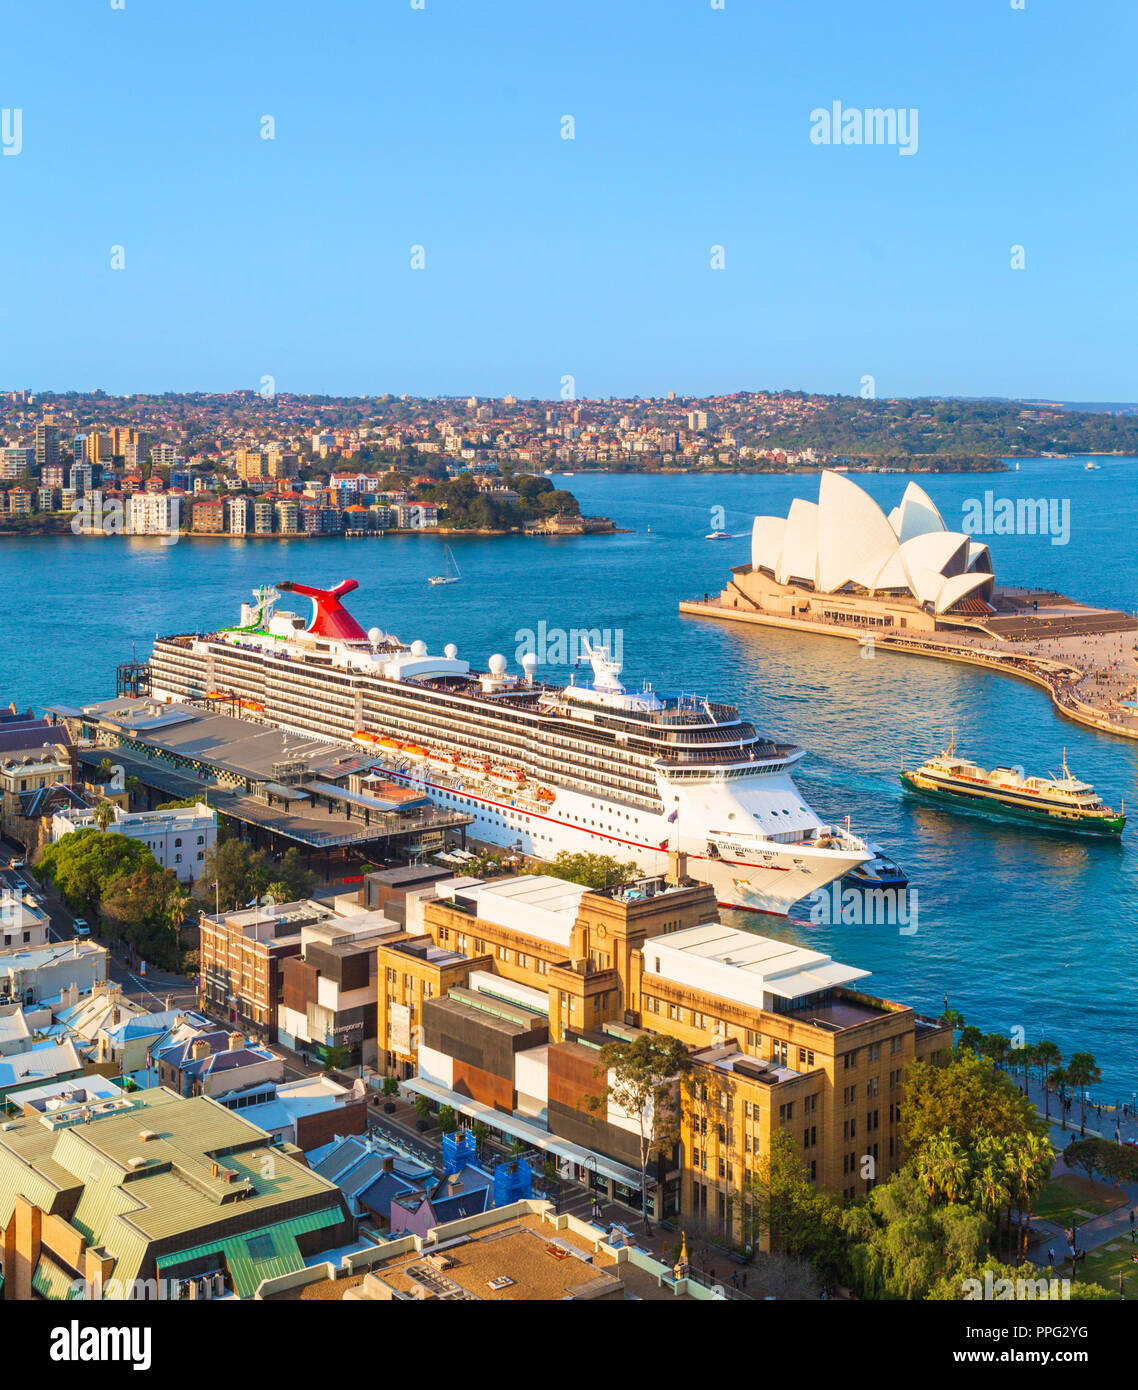 Carnival Spirit cruise ship docked at the Overseas Passenger Terminal in Sydney, New South Wales, Australia - Stock Image